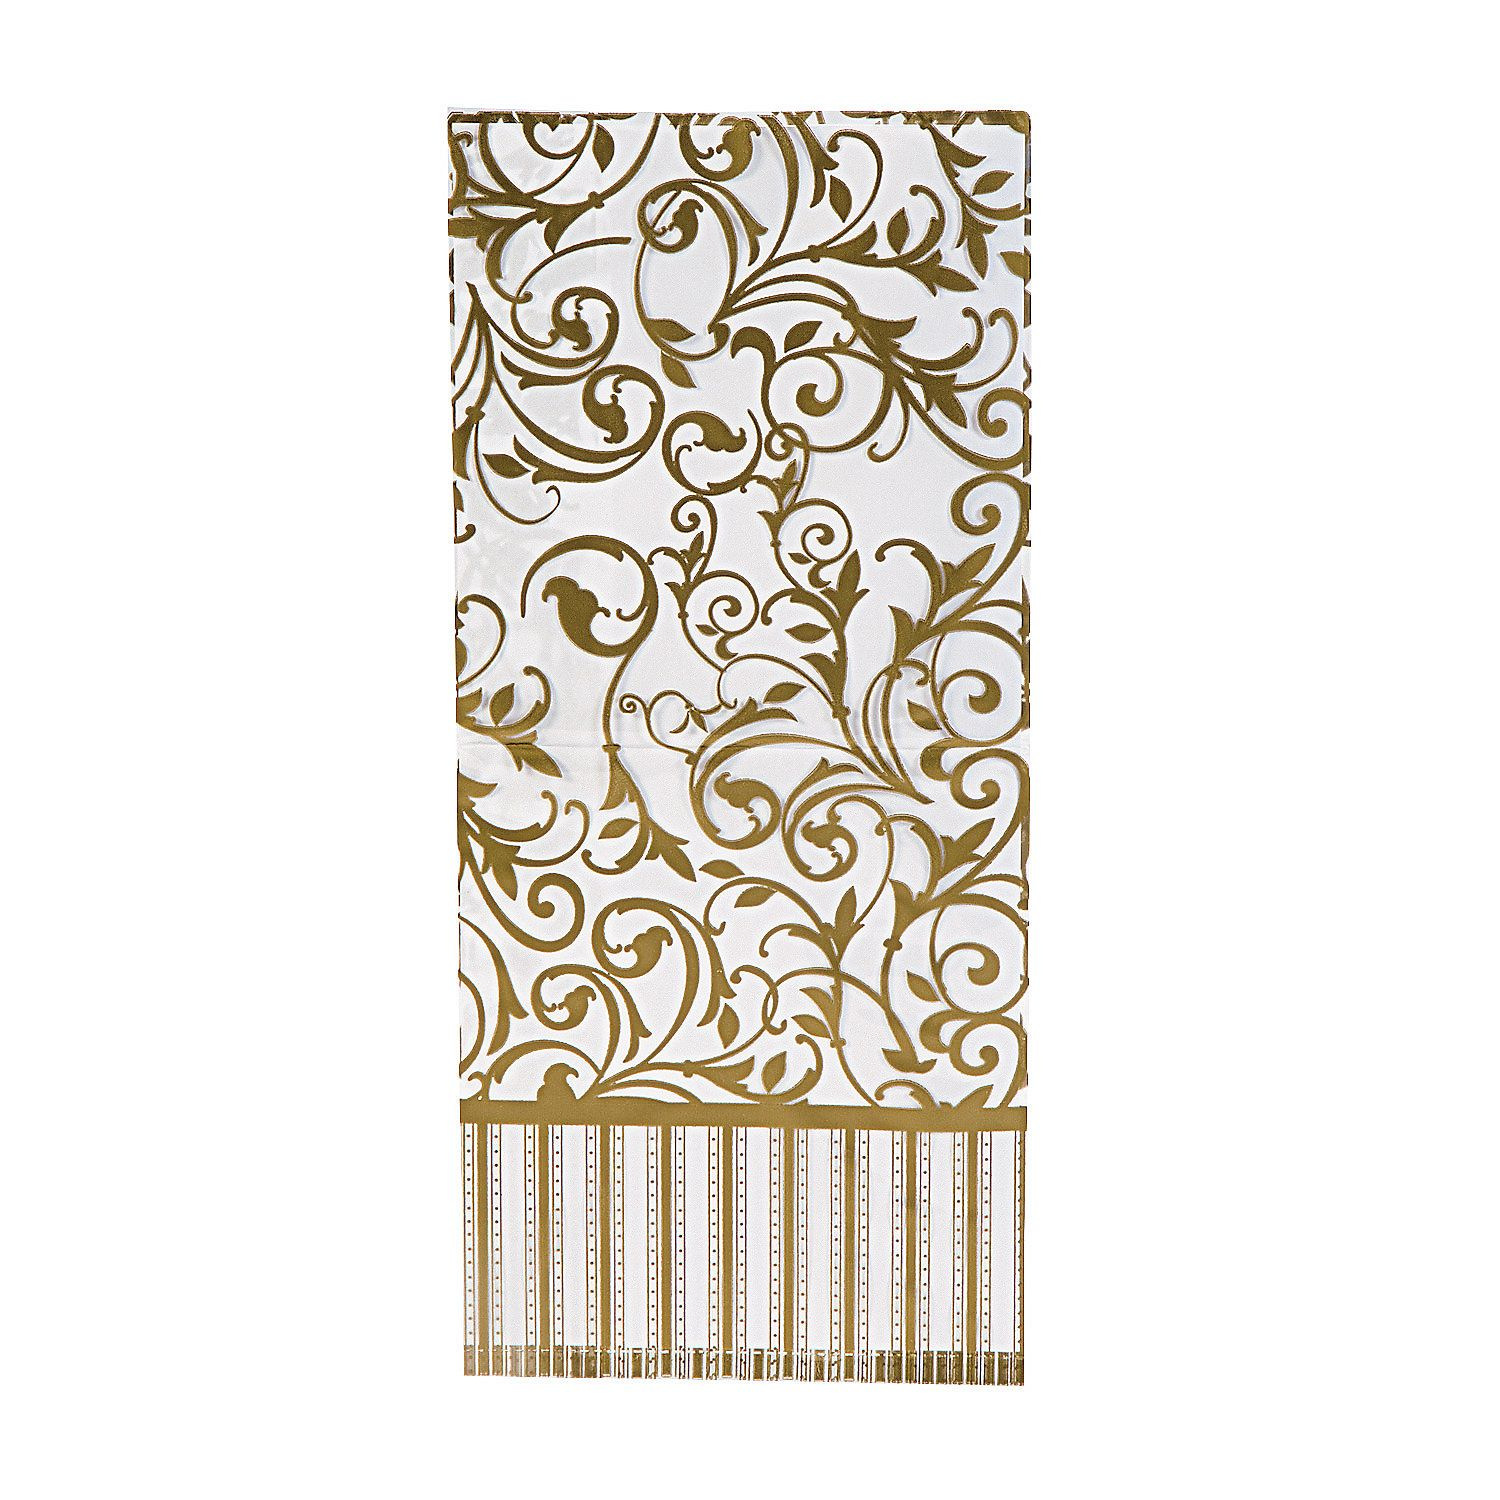 Gold Swirl Cellophane Bags | Cellophane bags, Oriental trading and ...